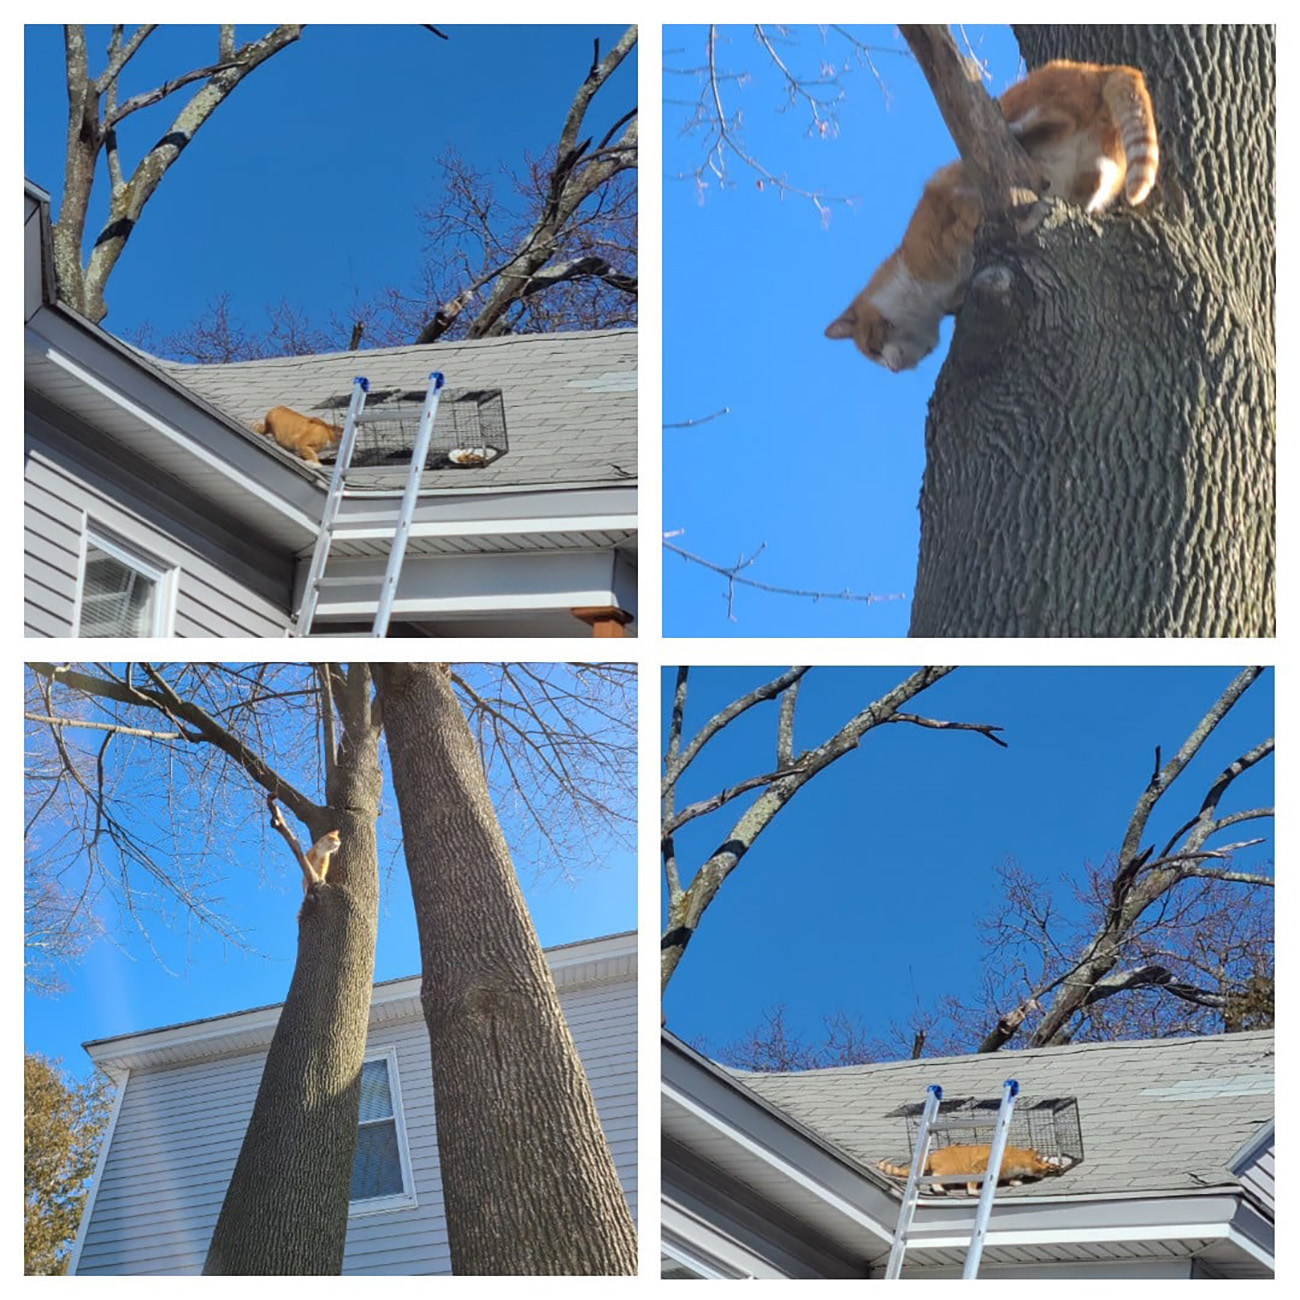 Composite of cat being saved from roof